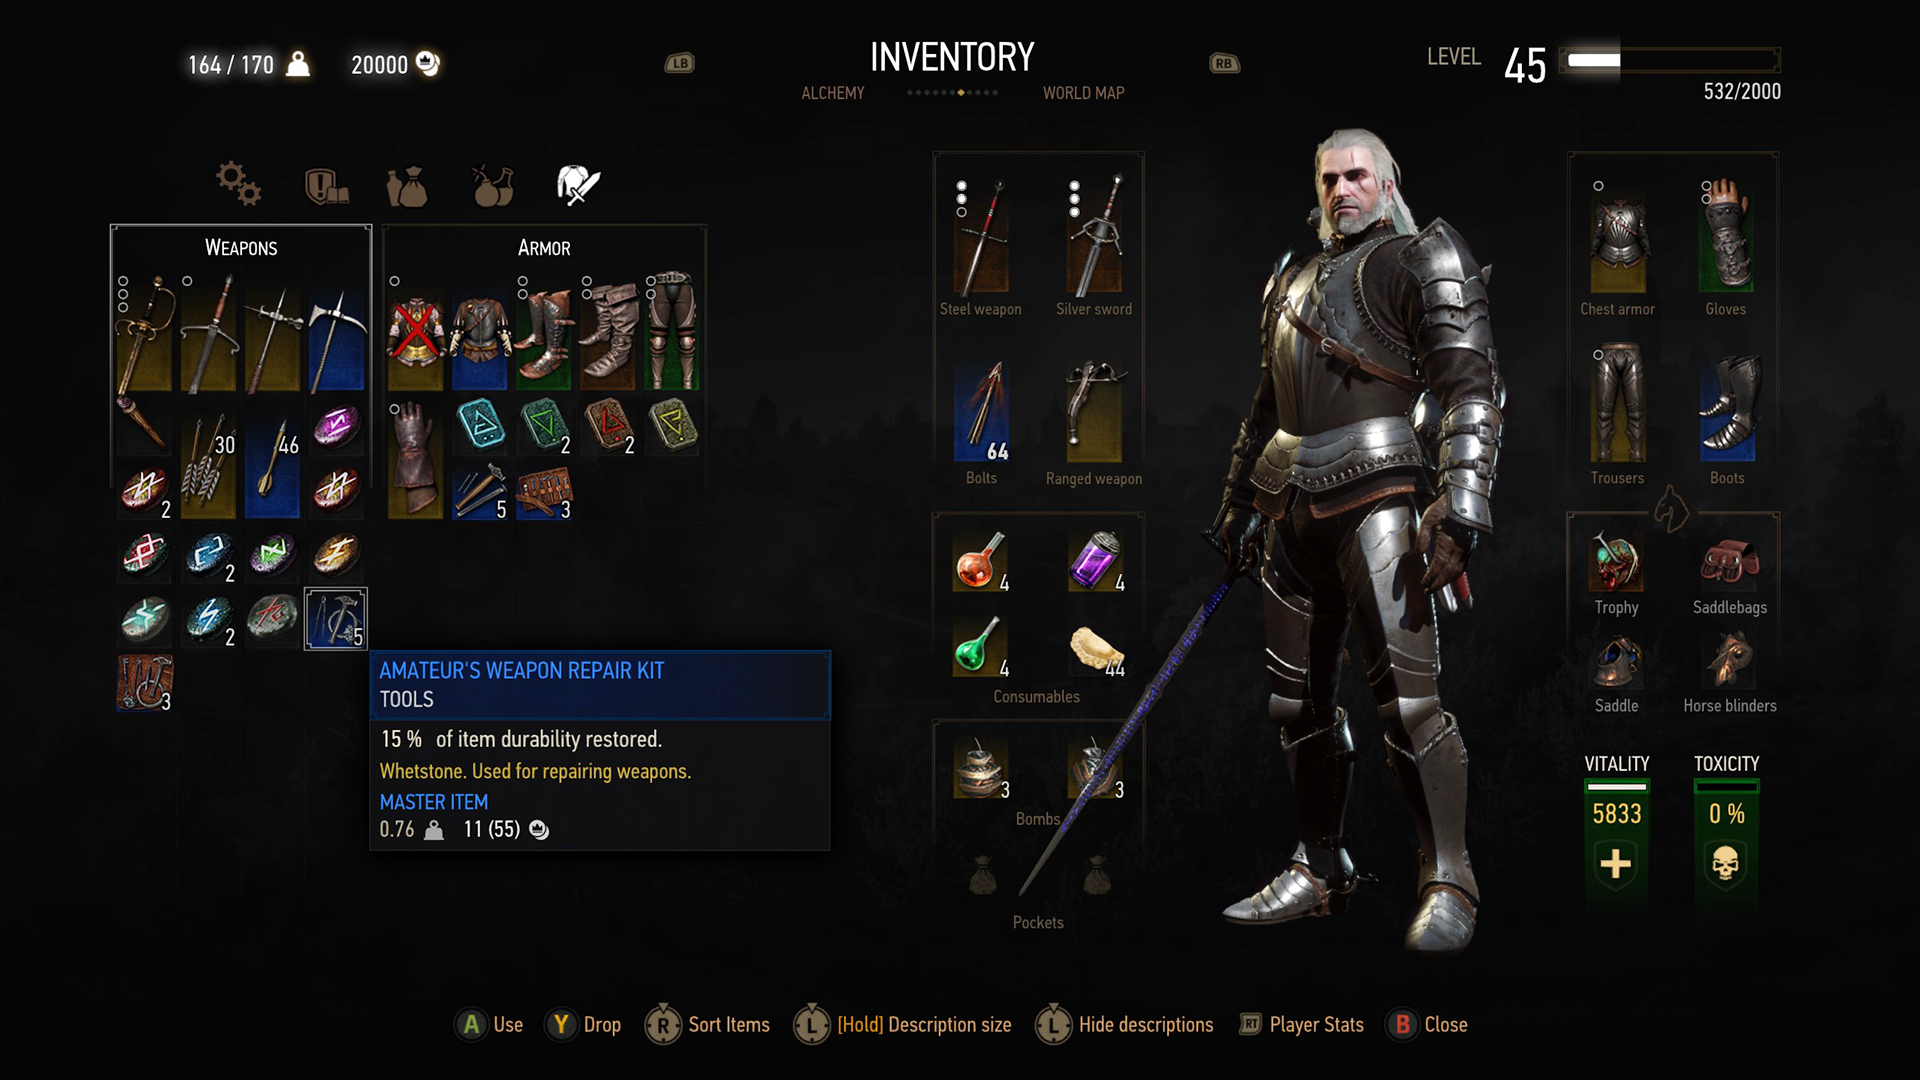 7 things you need to know about The Witcher 3's massive